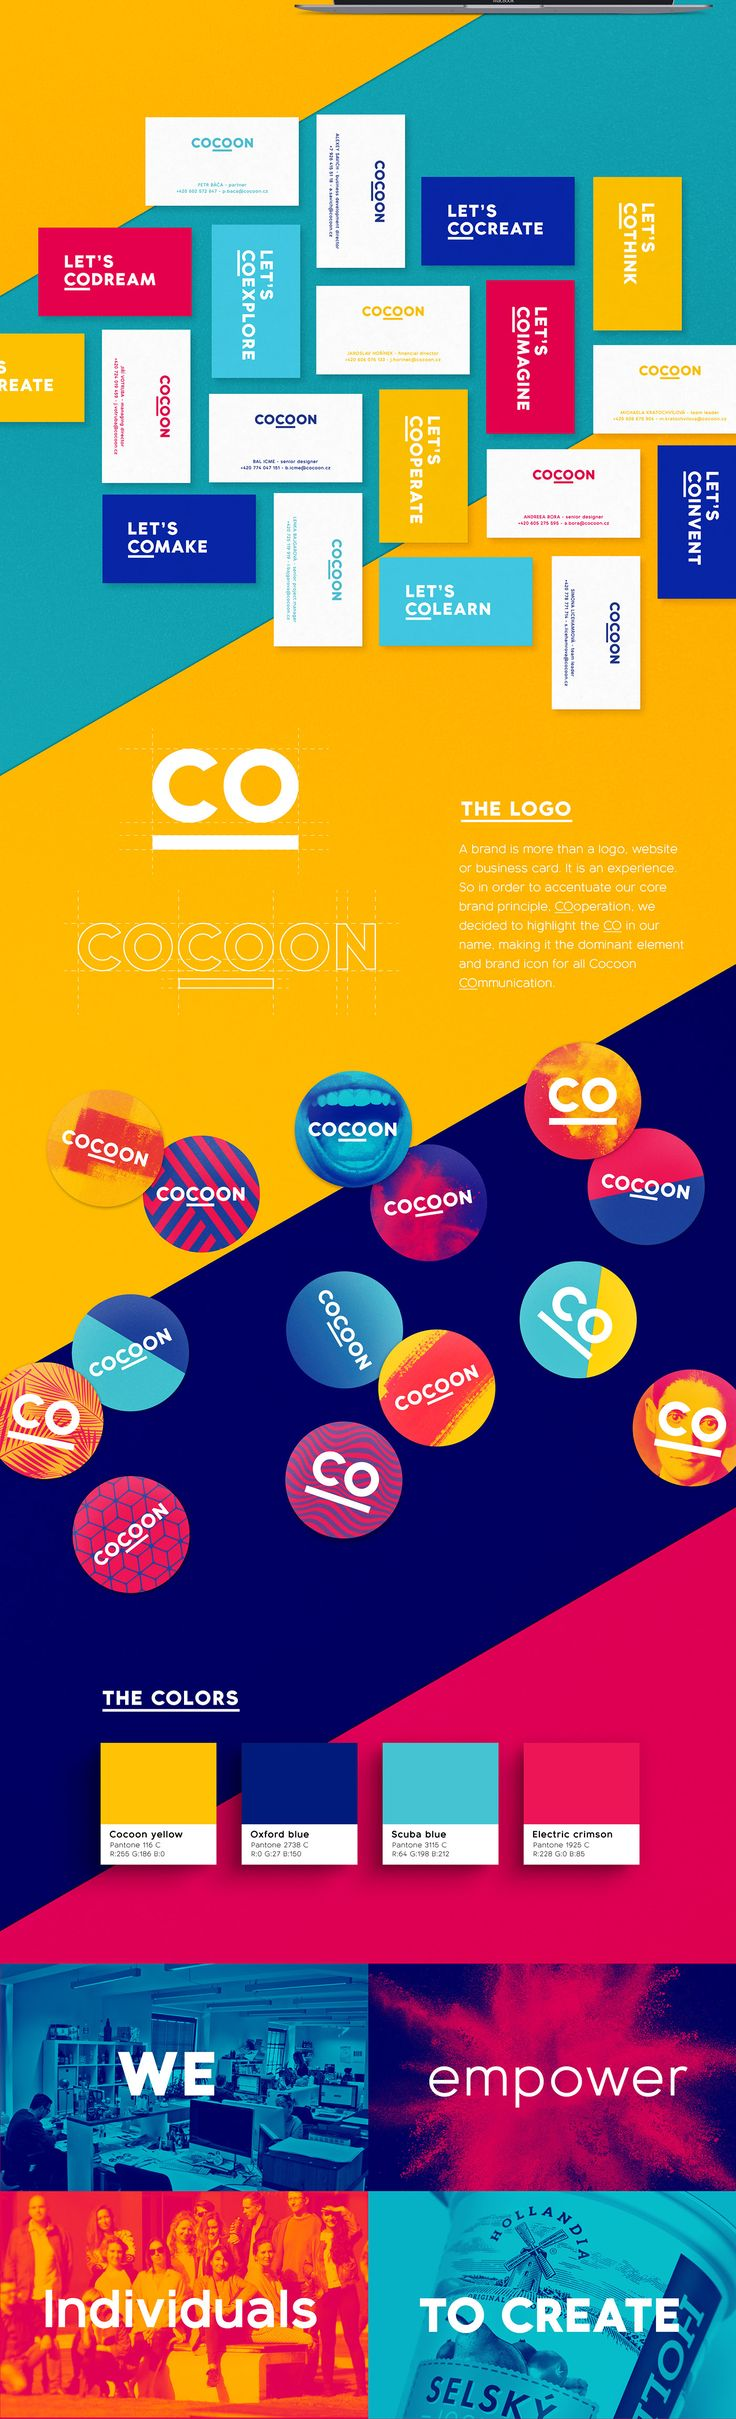 "After 20 exceptional years, Cocoon Group got a facelift. Our rebrand is here and here to stay. Along with dropping the ""Group"" in our name, we have revamped the Cocoon identity and tagline, ""Thinkers. Designers. Makers"", to emphasise our passion for limit…"